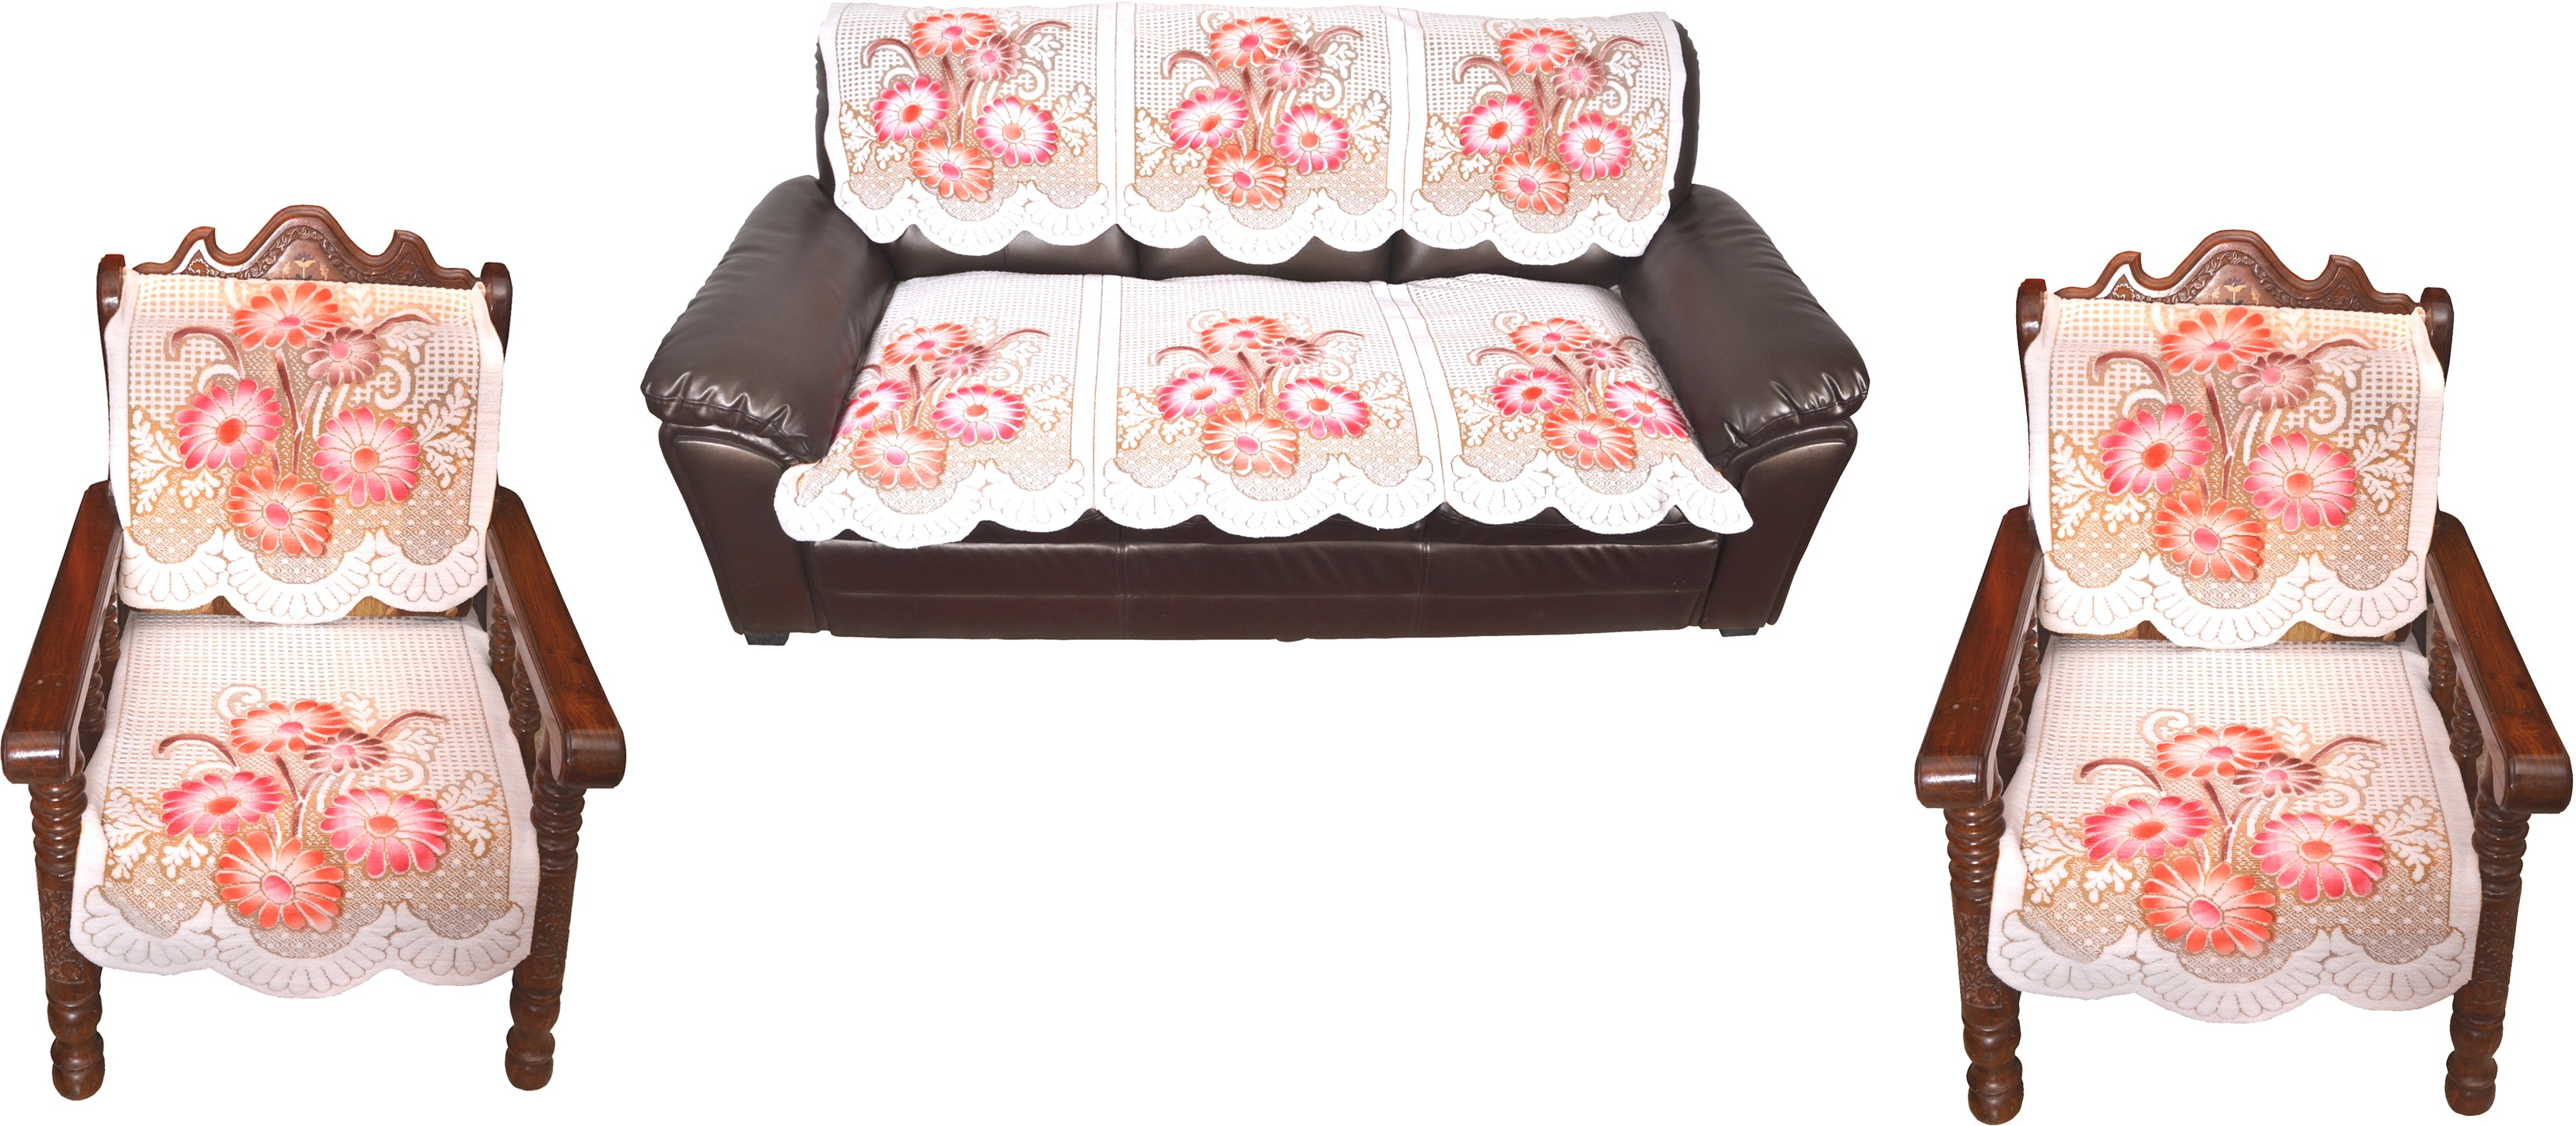 View Pindia Solid Wood 3 + 1 + 1 For 5 Seater Printed Flower Net Sofa Cover For Sofa Set Furniture (Pindia)